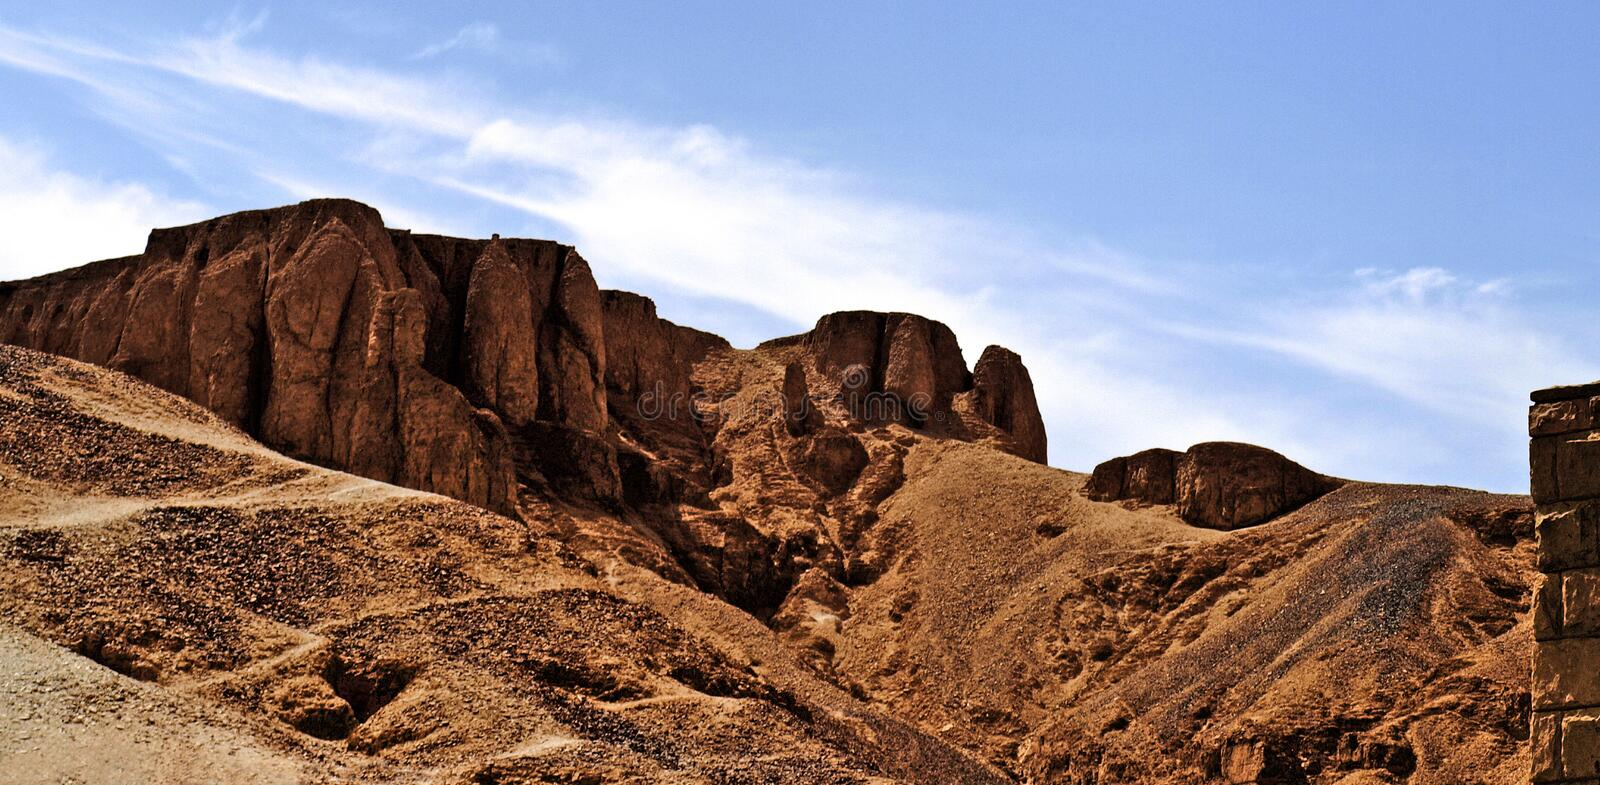 Valley of the kings. Rocks surrounding the entry of the valley of the kings in Egypt royalty free stock photos